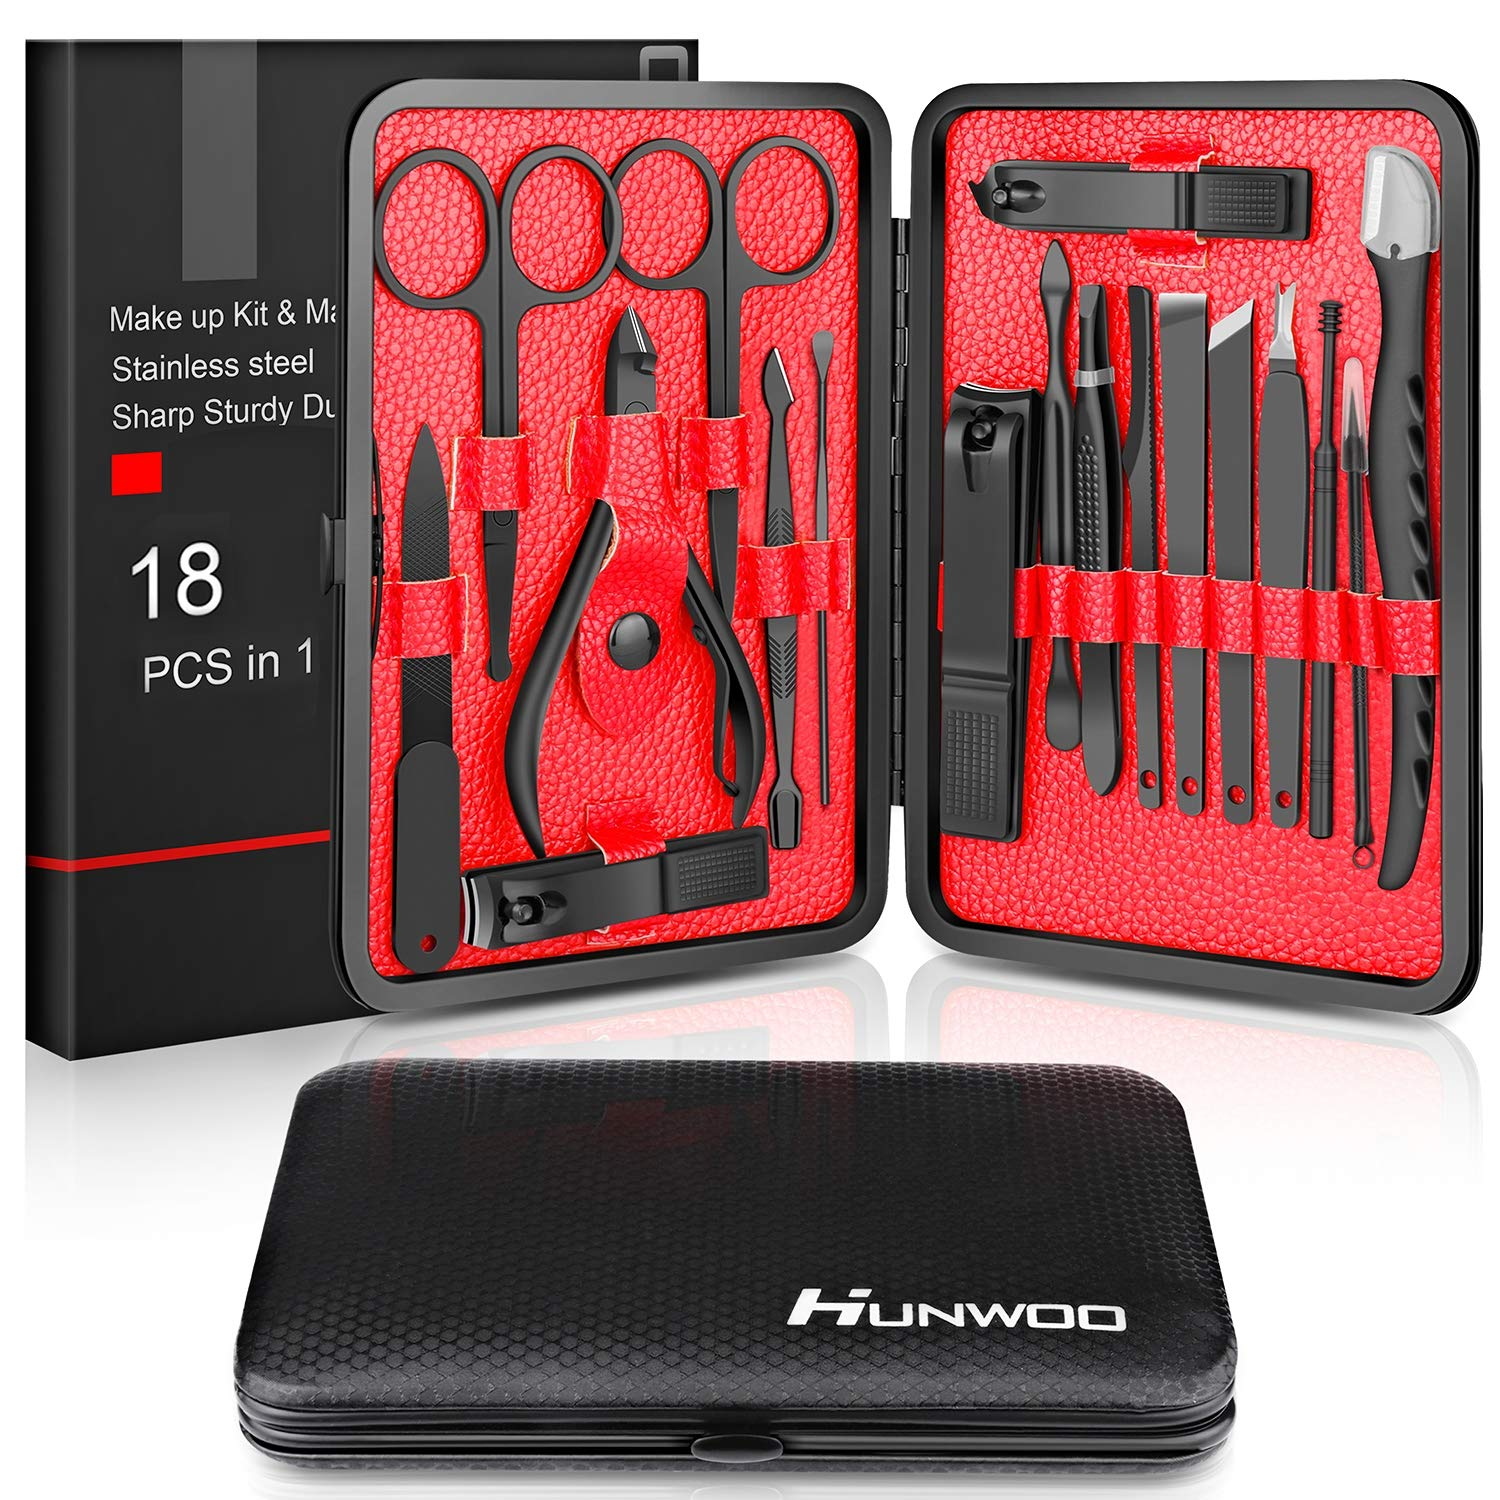 Updated 2020 Version Manicure Set-Hunwoo Nail Clippers | Best Pedicure Kit